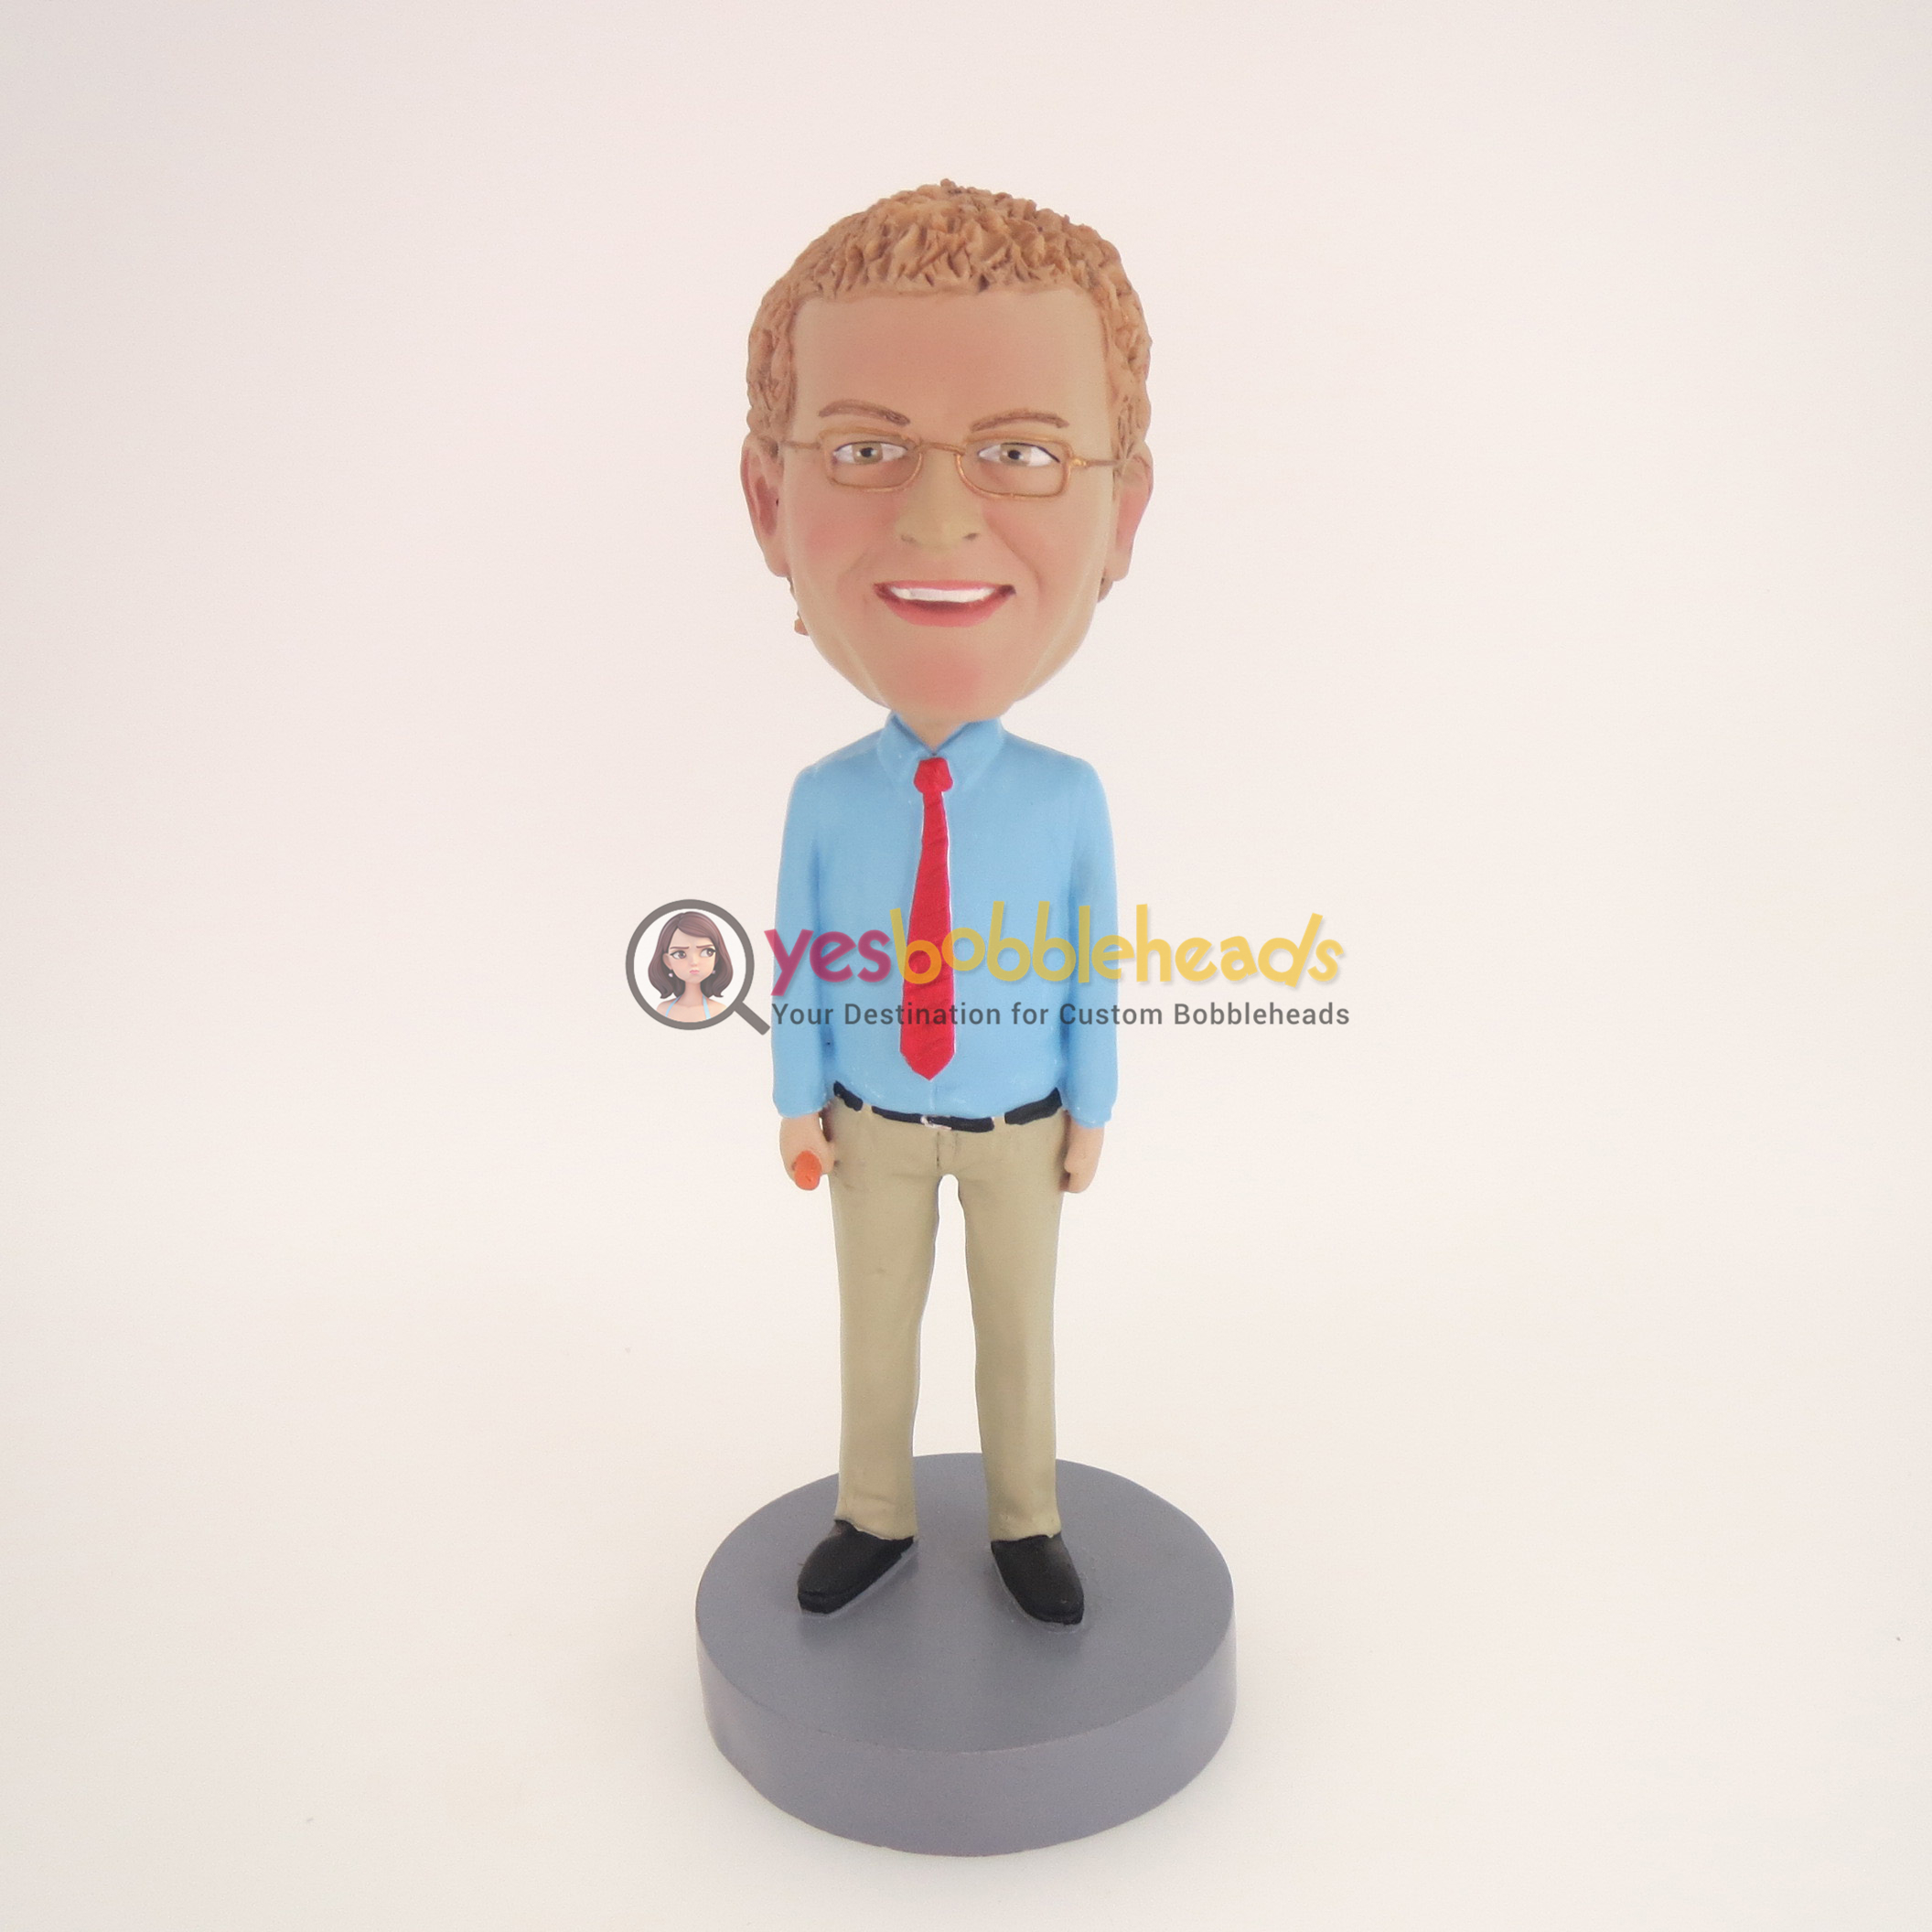 Picture of Custom Bobblehead Doll: Man With Blue Shirt And Red Tie